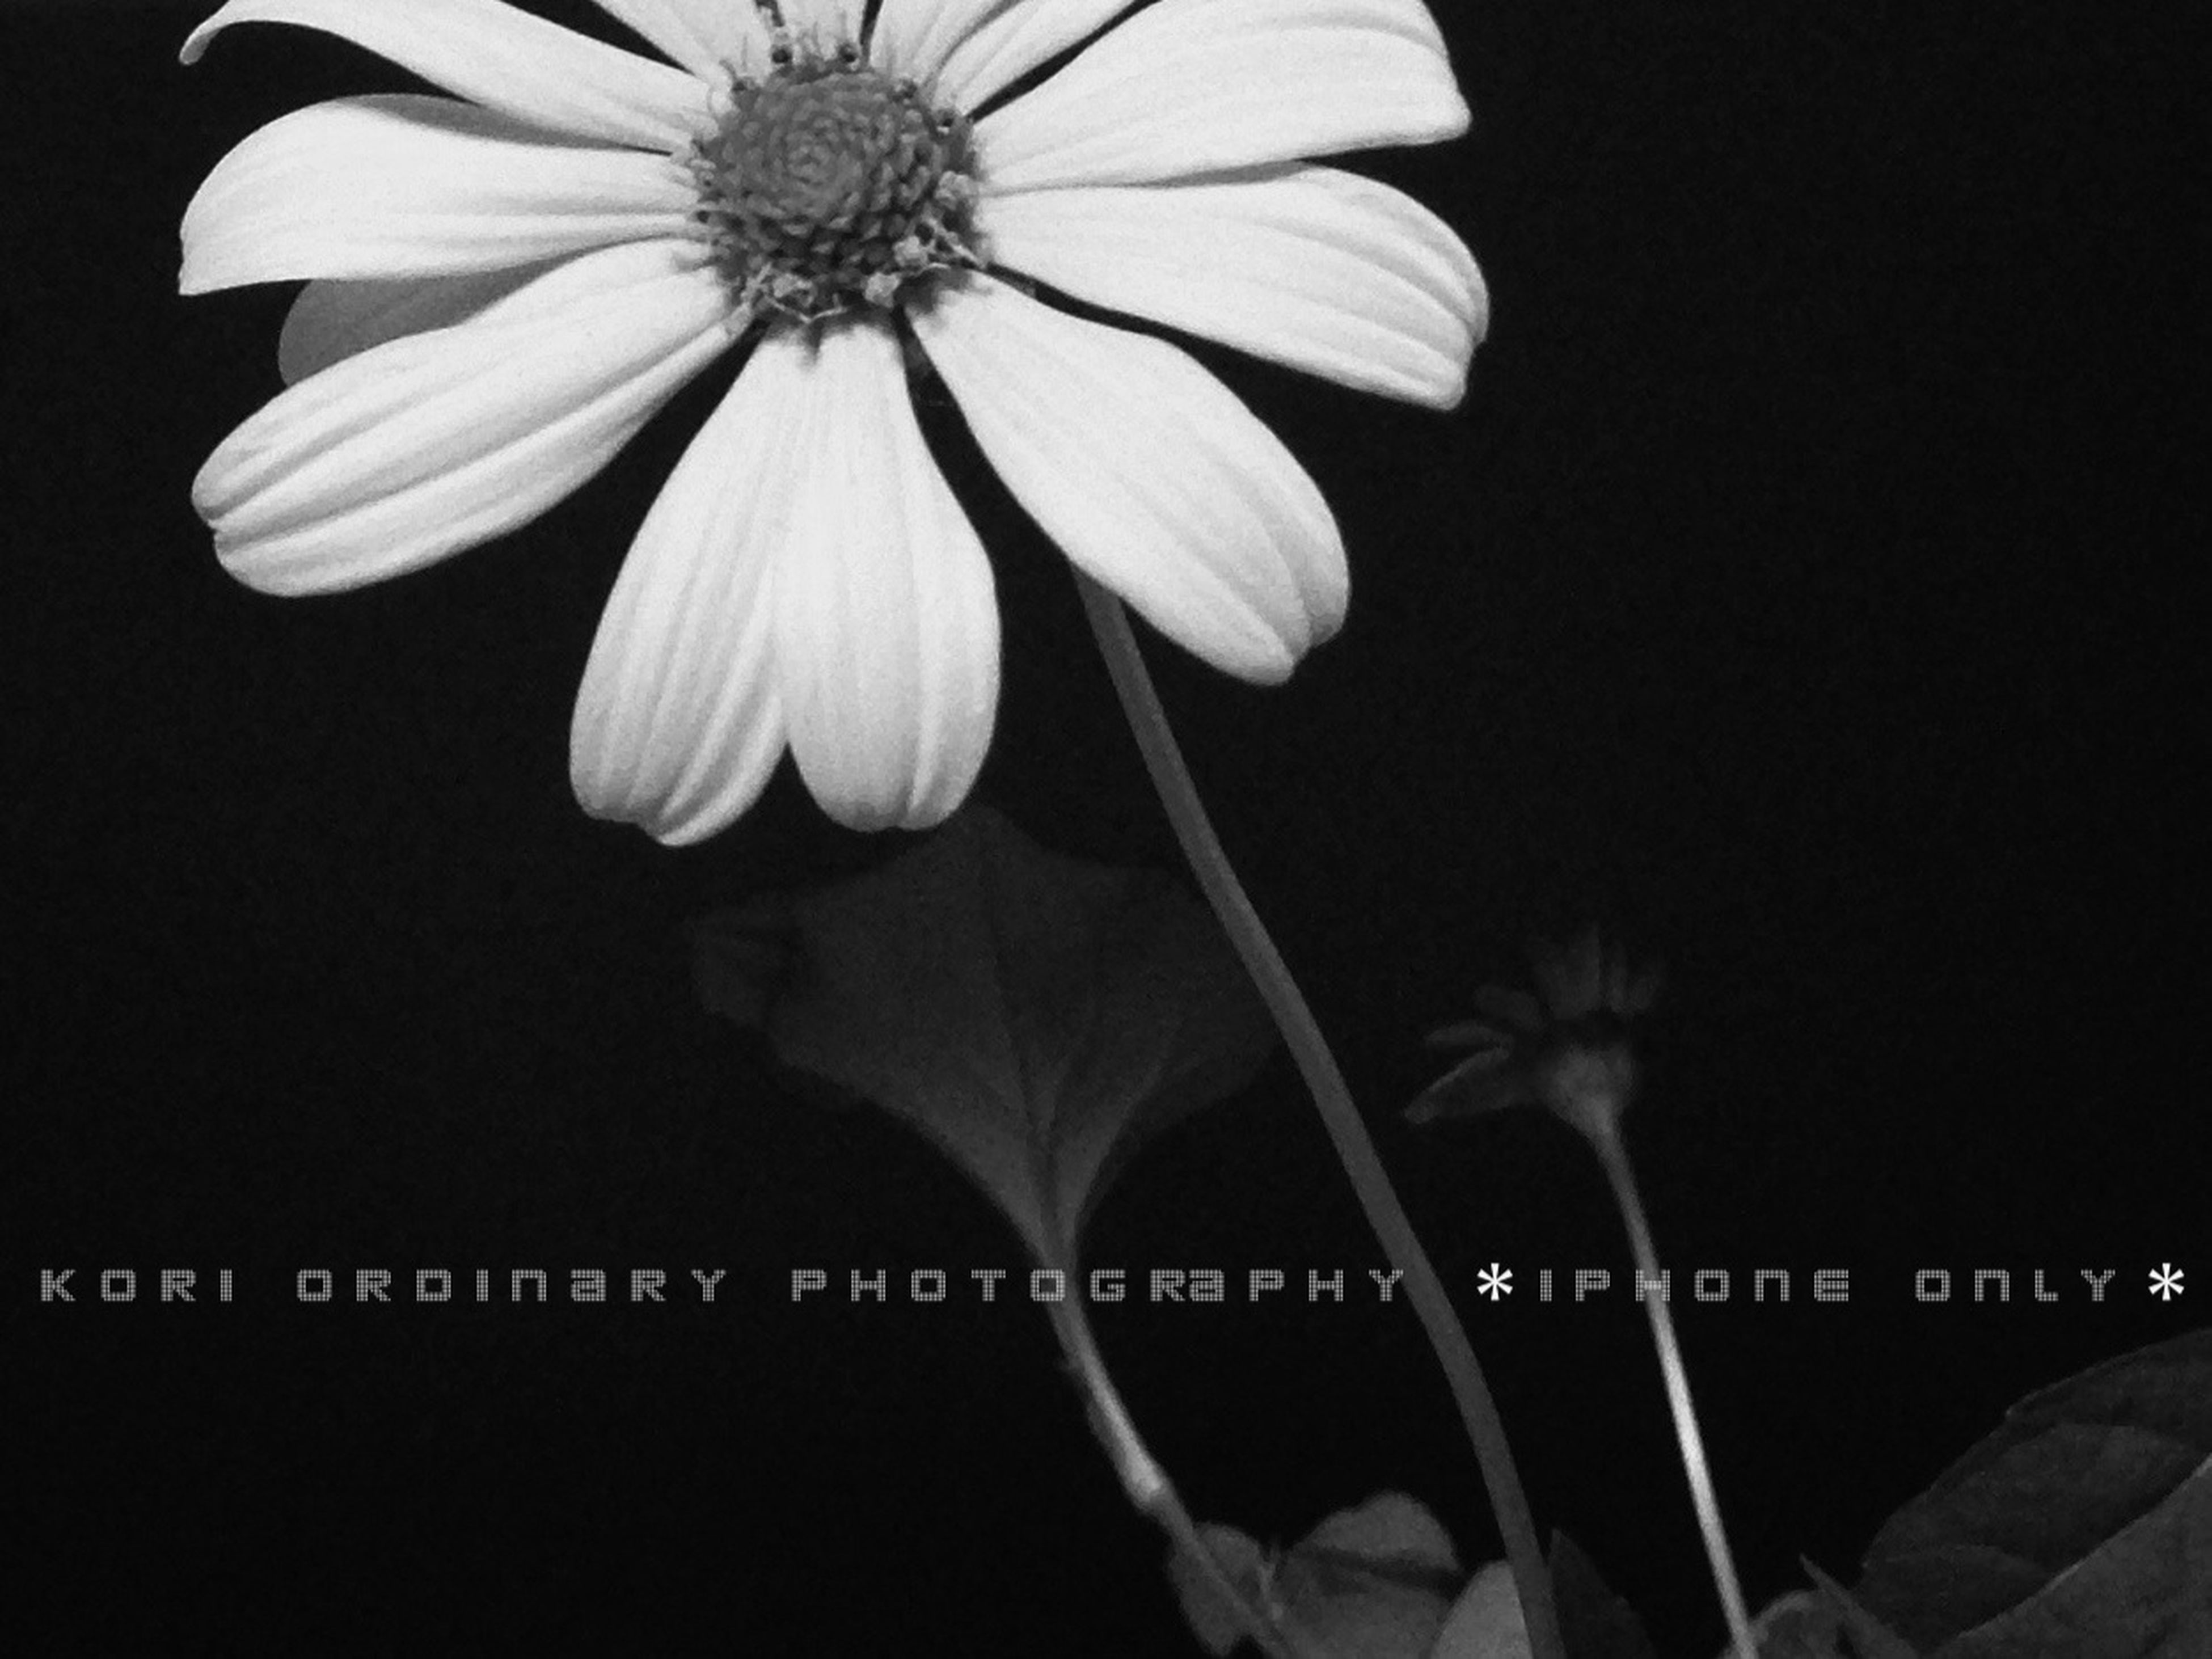 flower, petal, fragility, flower head, freshness, growth, night, close-up, copy space, beauty in nature, studio shot, nature, black background, plant, blooming, stem, focus on foreground, outdoors, clear sky, no people